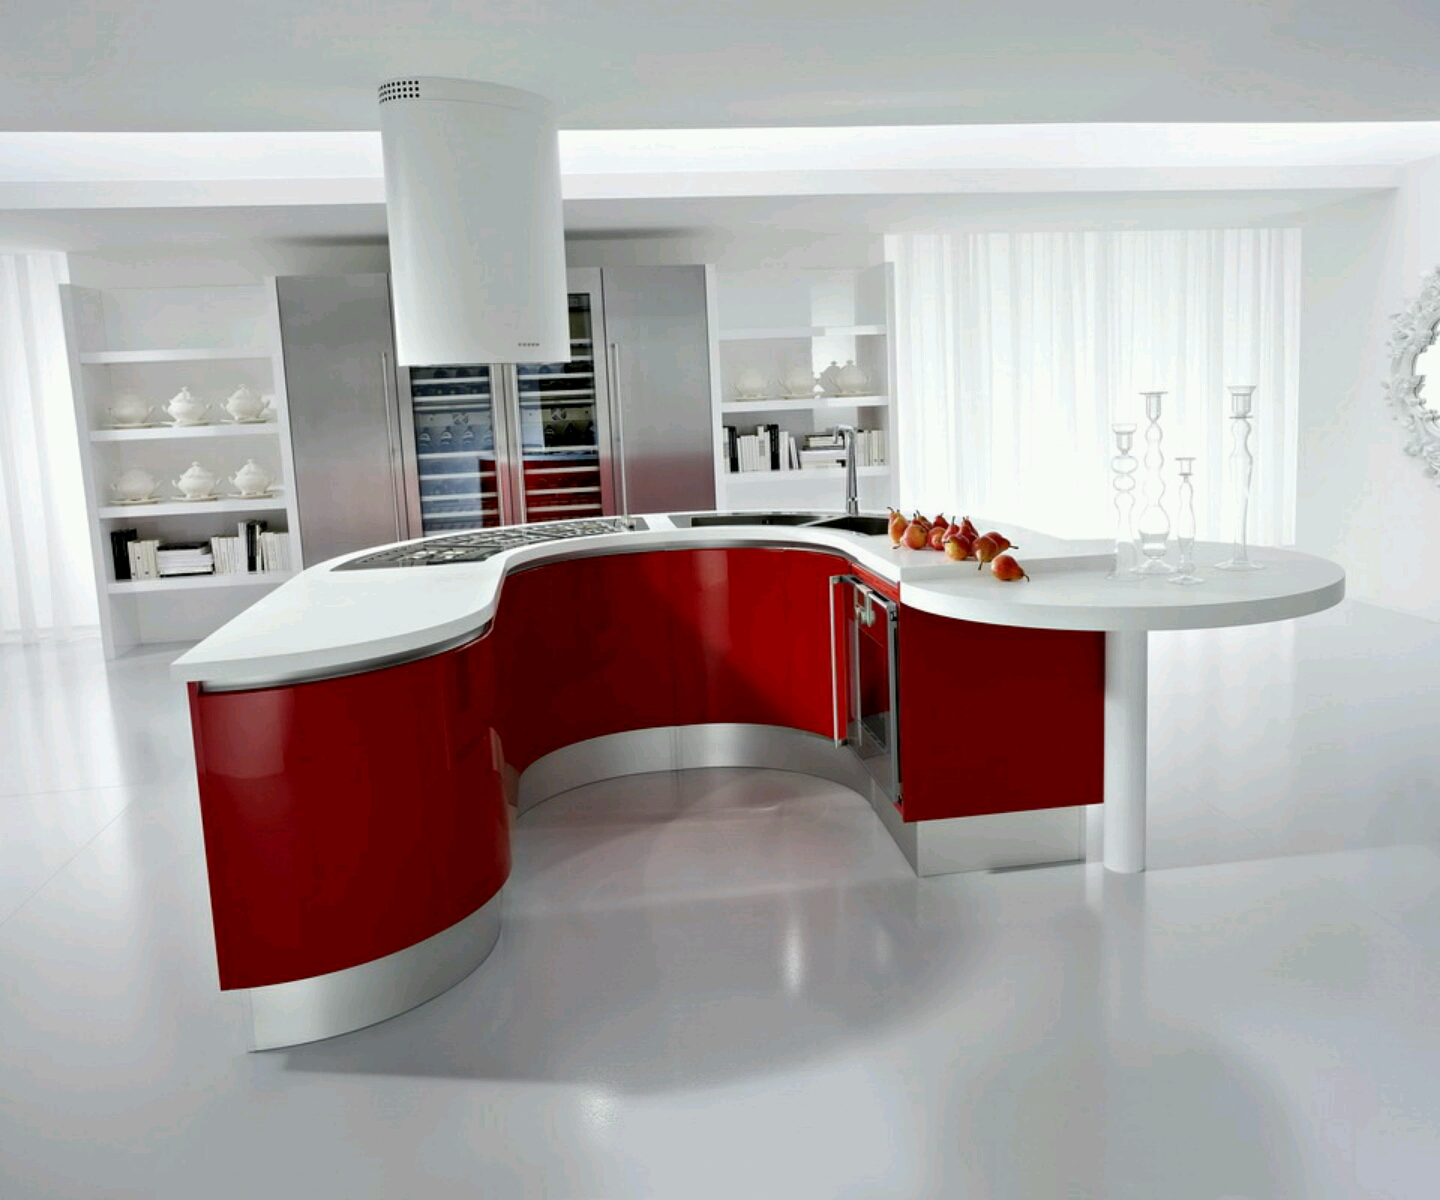 Modern kitchen cabinets designs ideas furniture gallery for Modern kitchen cabinet design